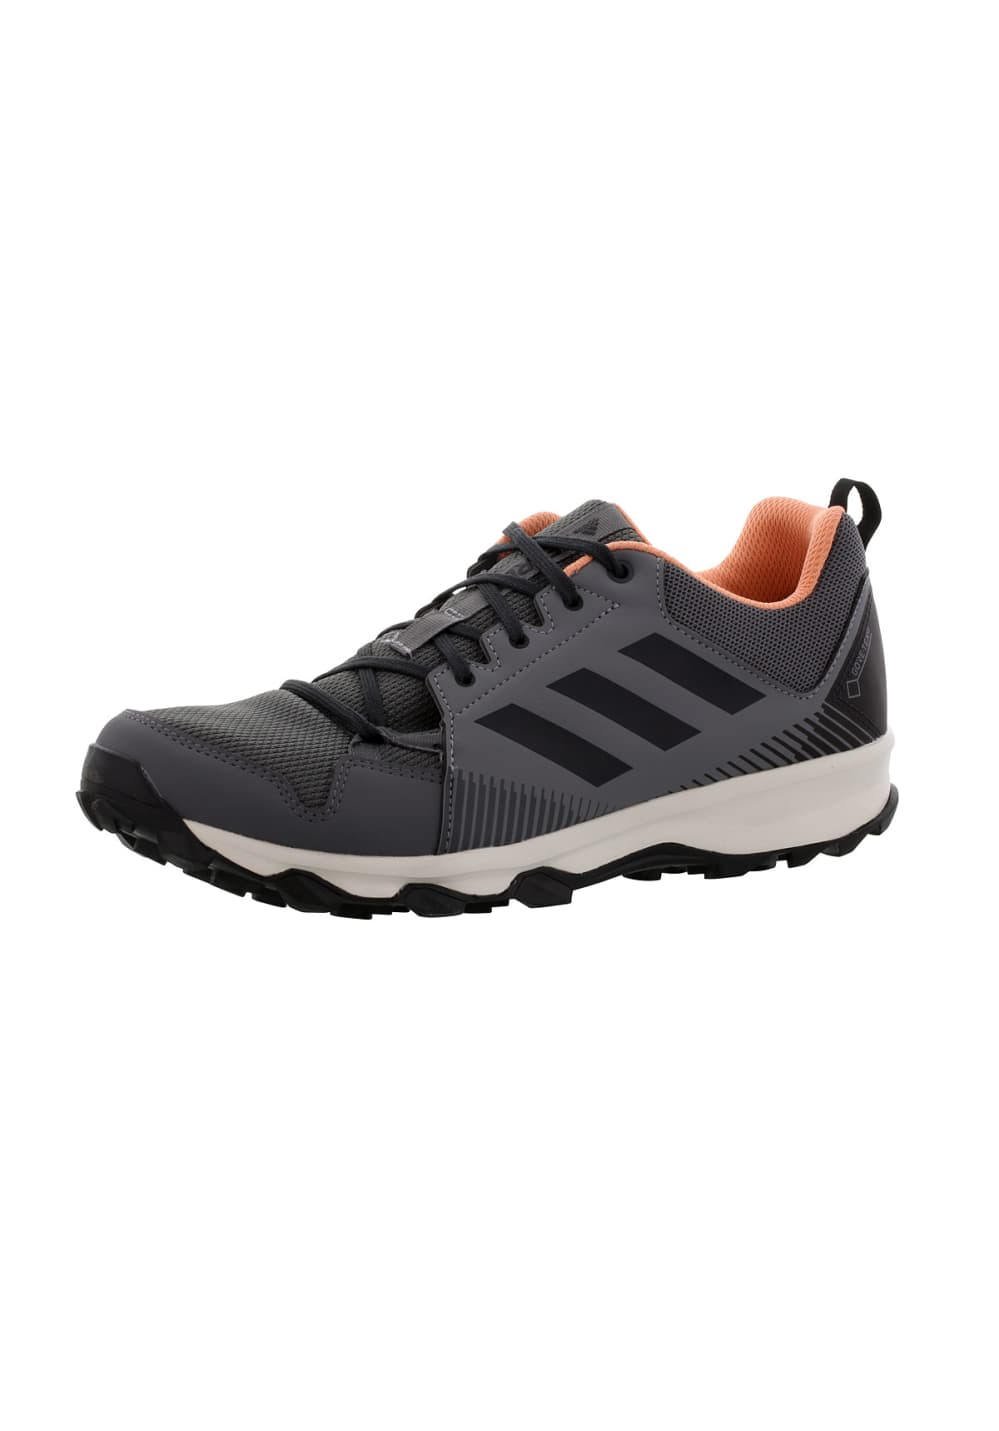 wholesale dealer 1d0dc e52c5 adidas TERREX Terrex Tracerocker GTX - Running shoes for Women - Grey